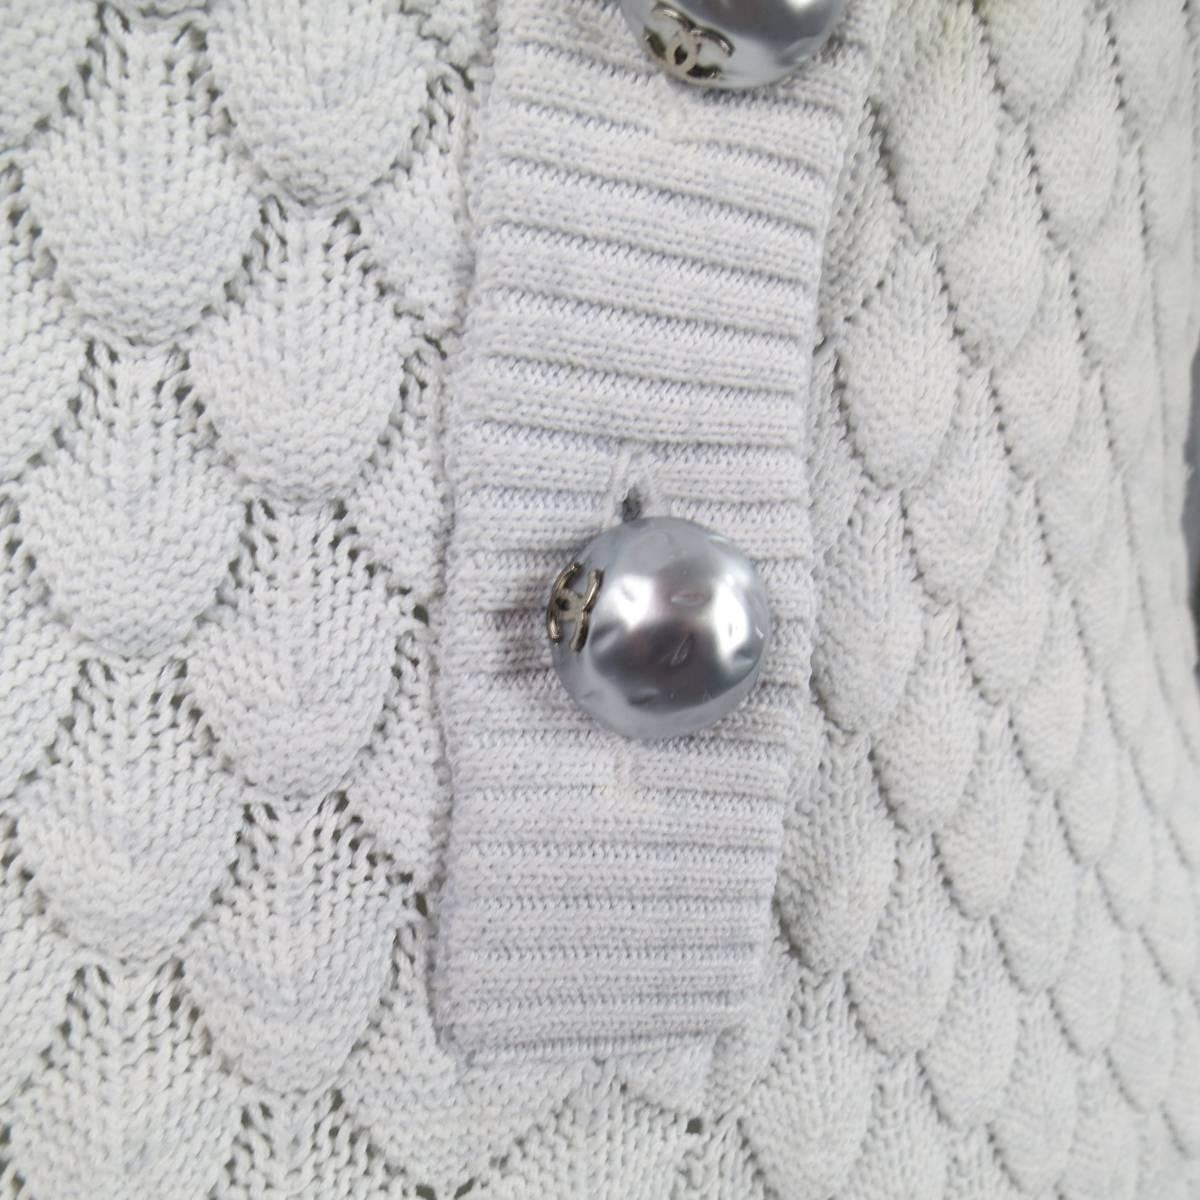 Chanel Spring Size 2 Ice Blue Textured Knit Cross